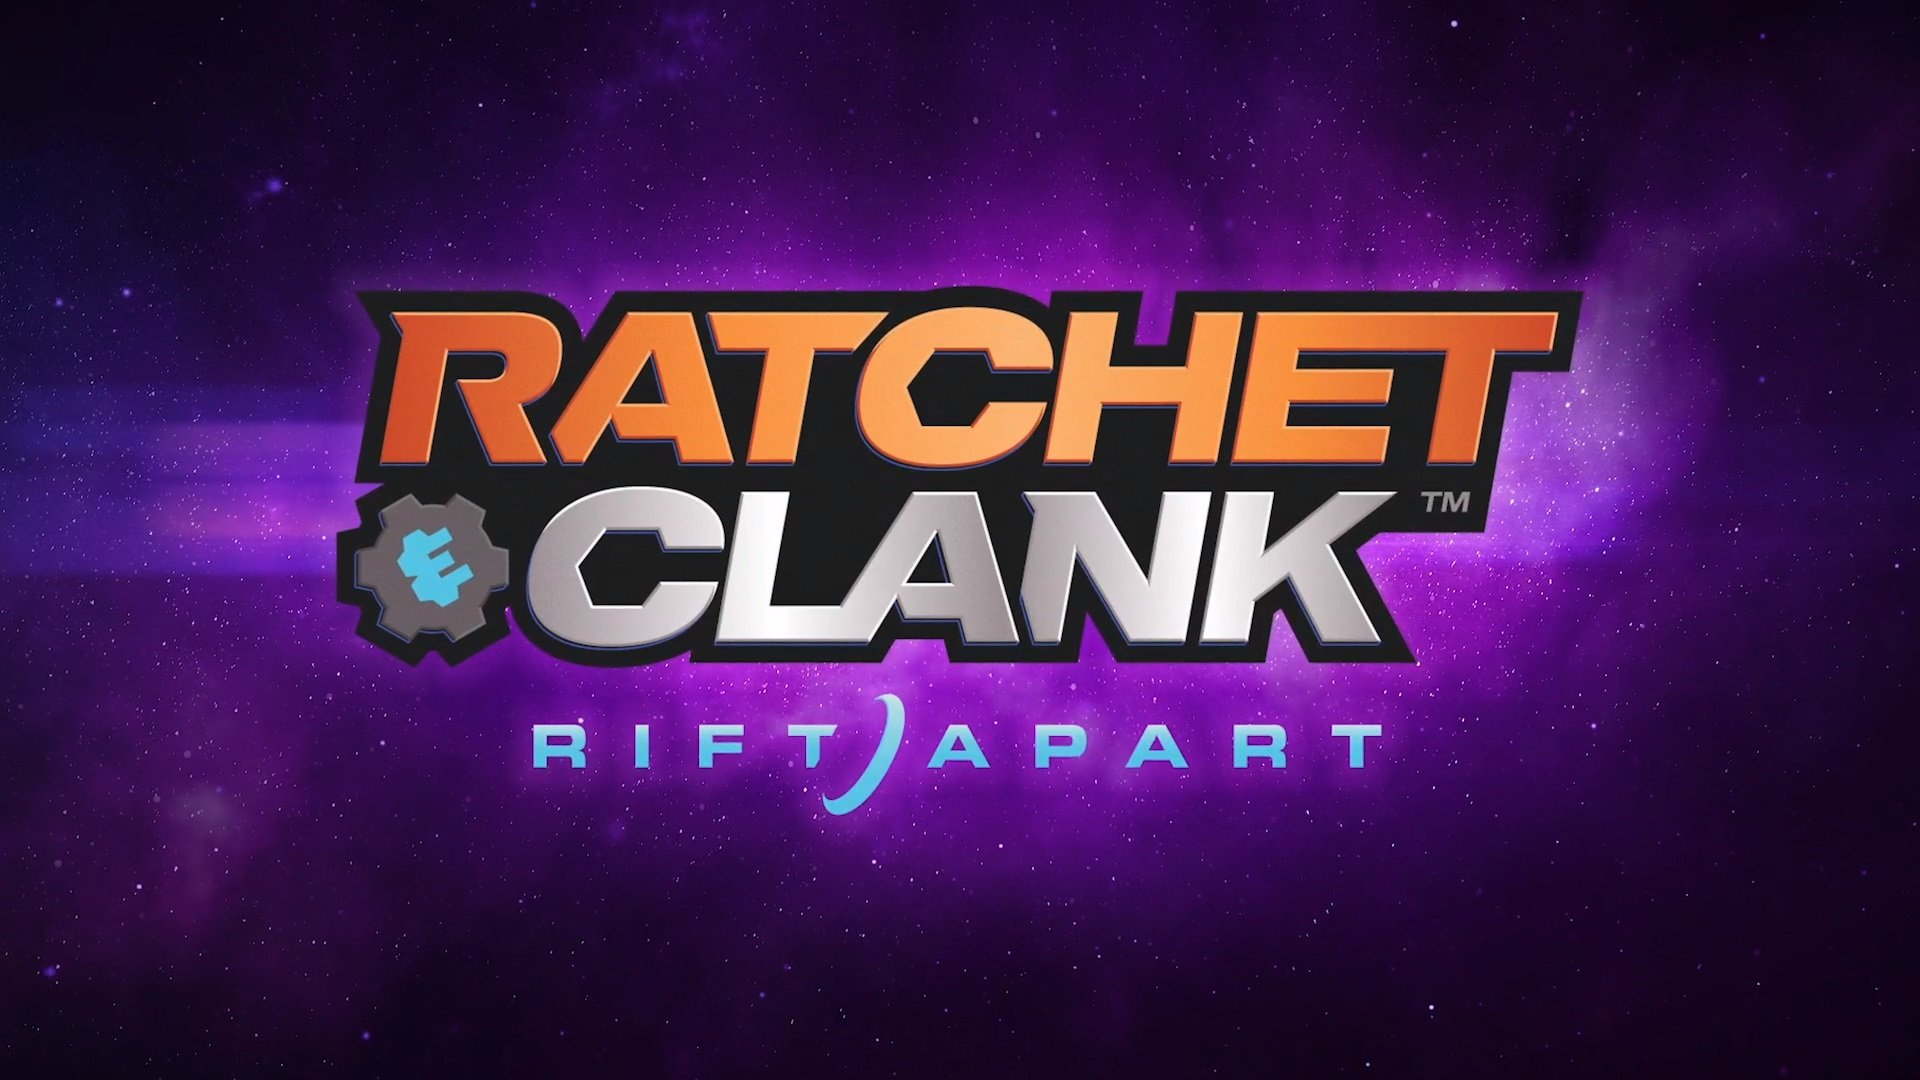 Ratchet & Clank: Rift Apart revealed for PS5